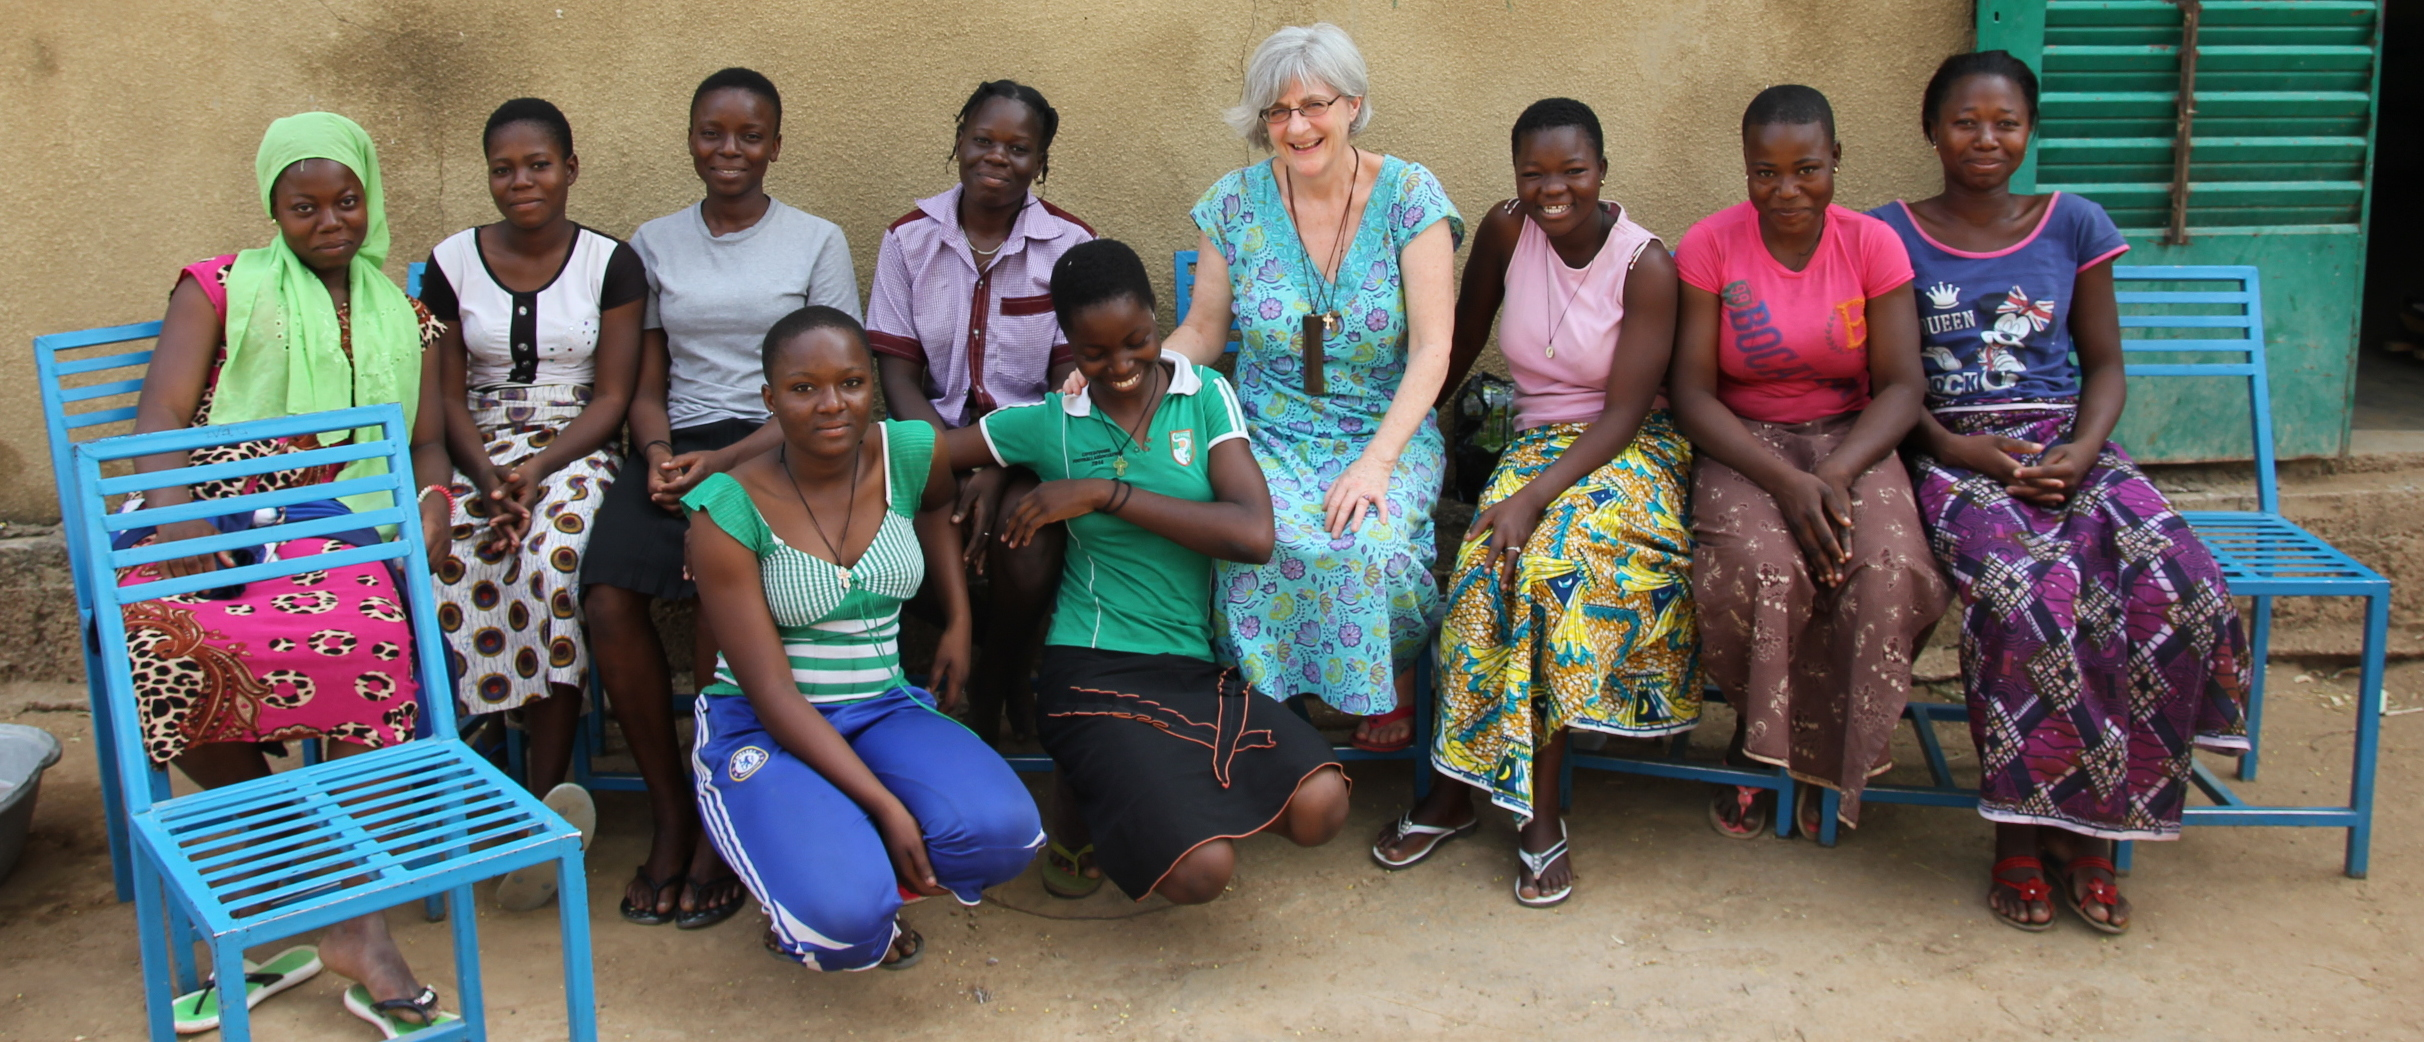 St Monique Home - Orphaned girls need help to remain in school